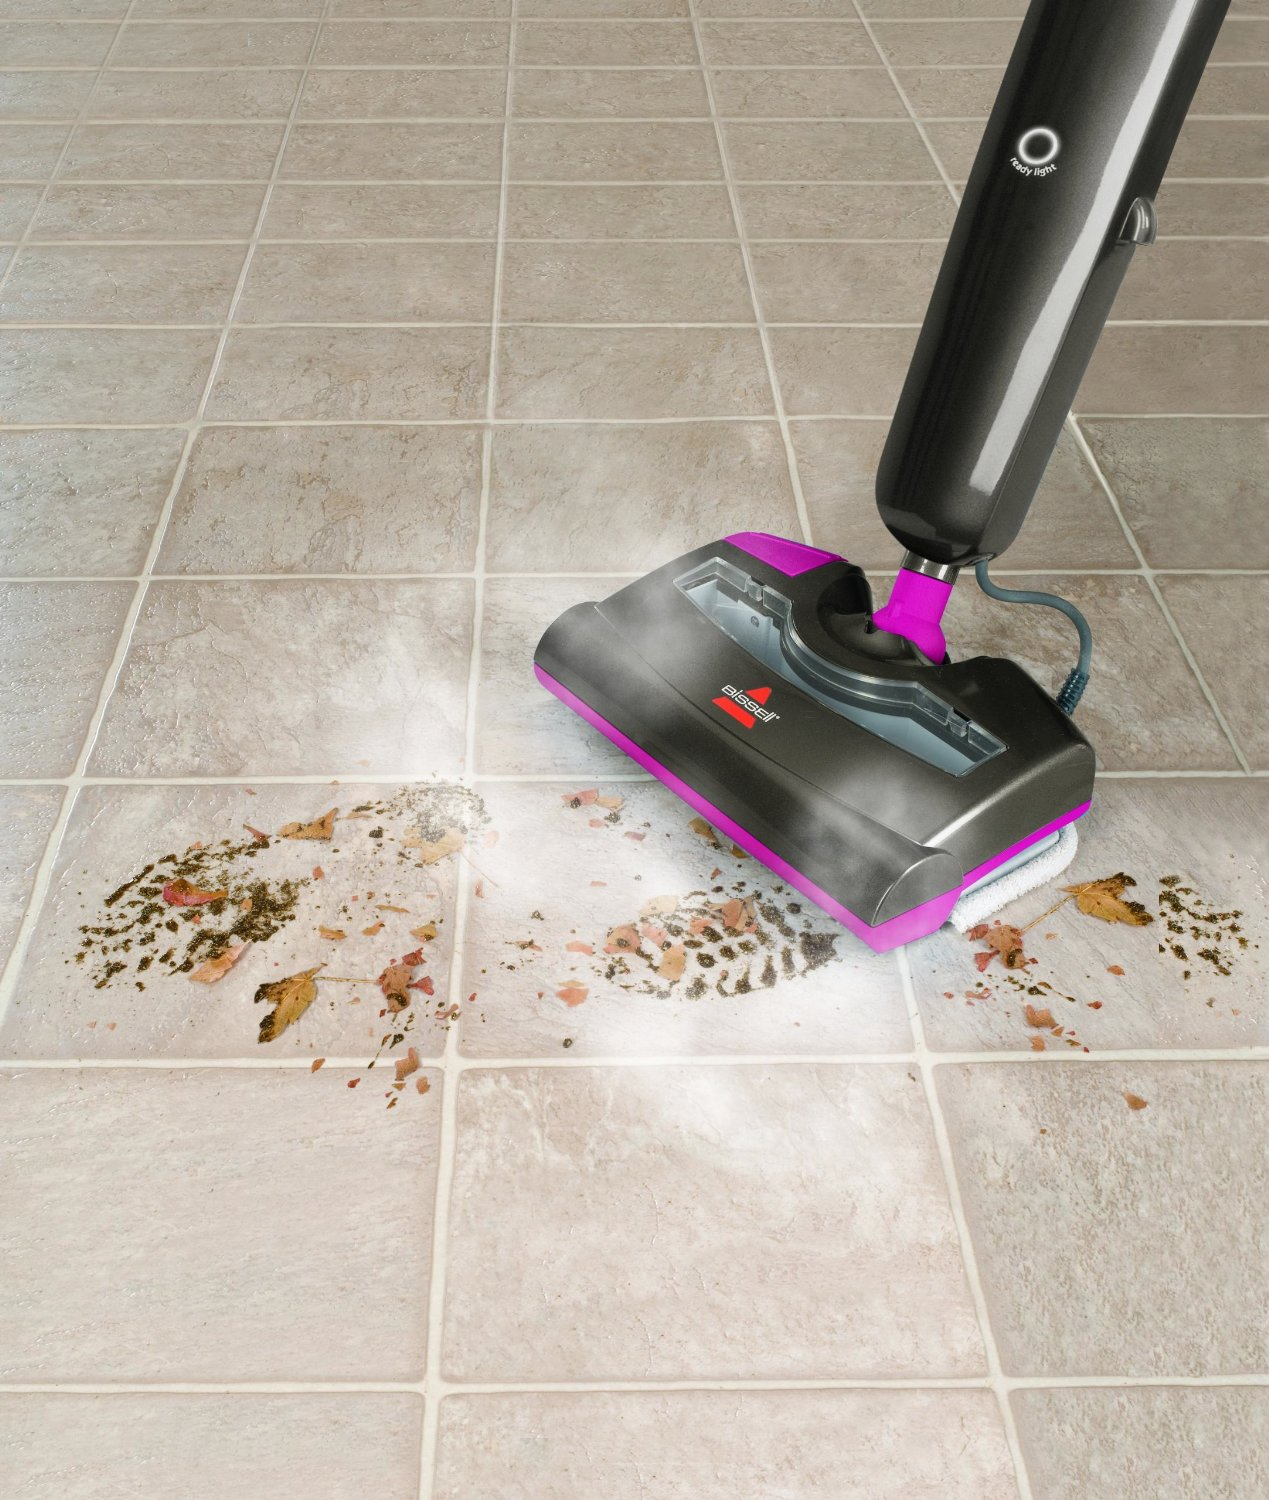 Cleaning Ceramic Tile Floors By Vacuuming Stylish Black Purple Vacuum